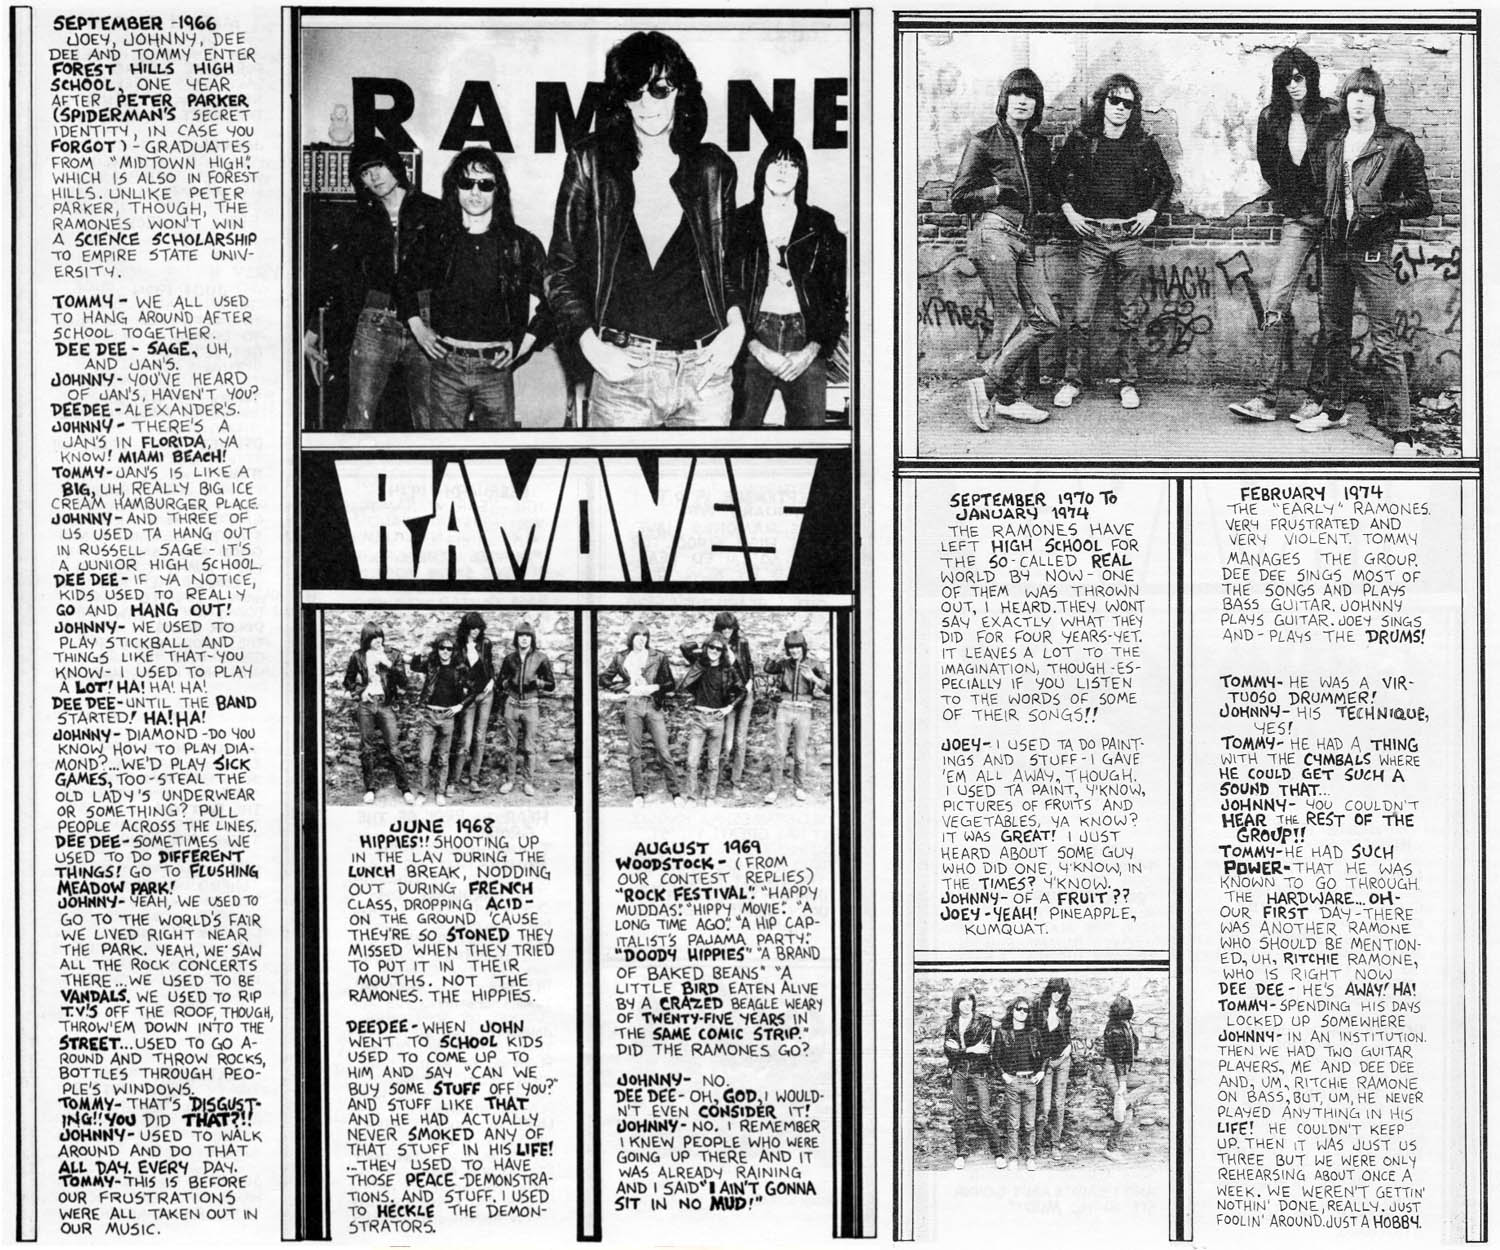 Roberta Bayley (photographer), Article on the Ramones, Punk Magazine, Issue 3, April 1976